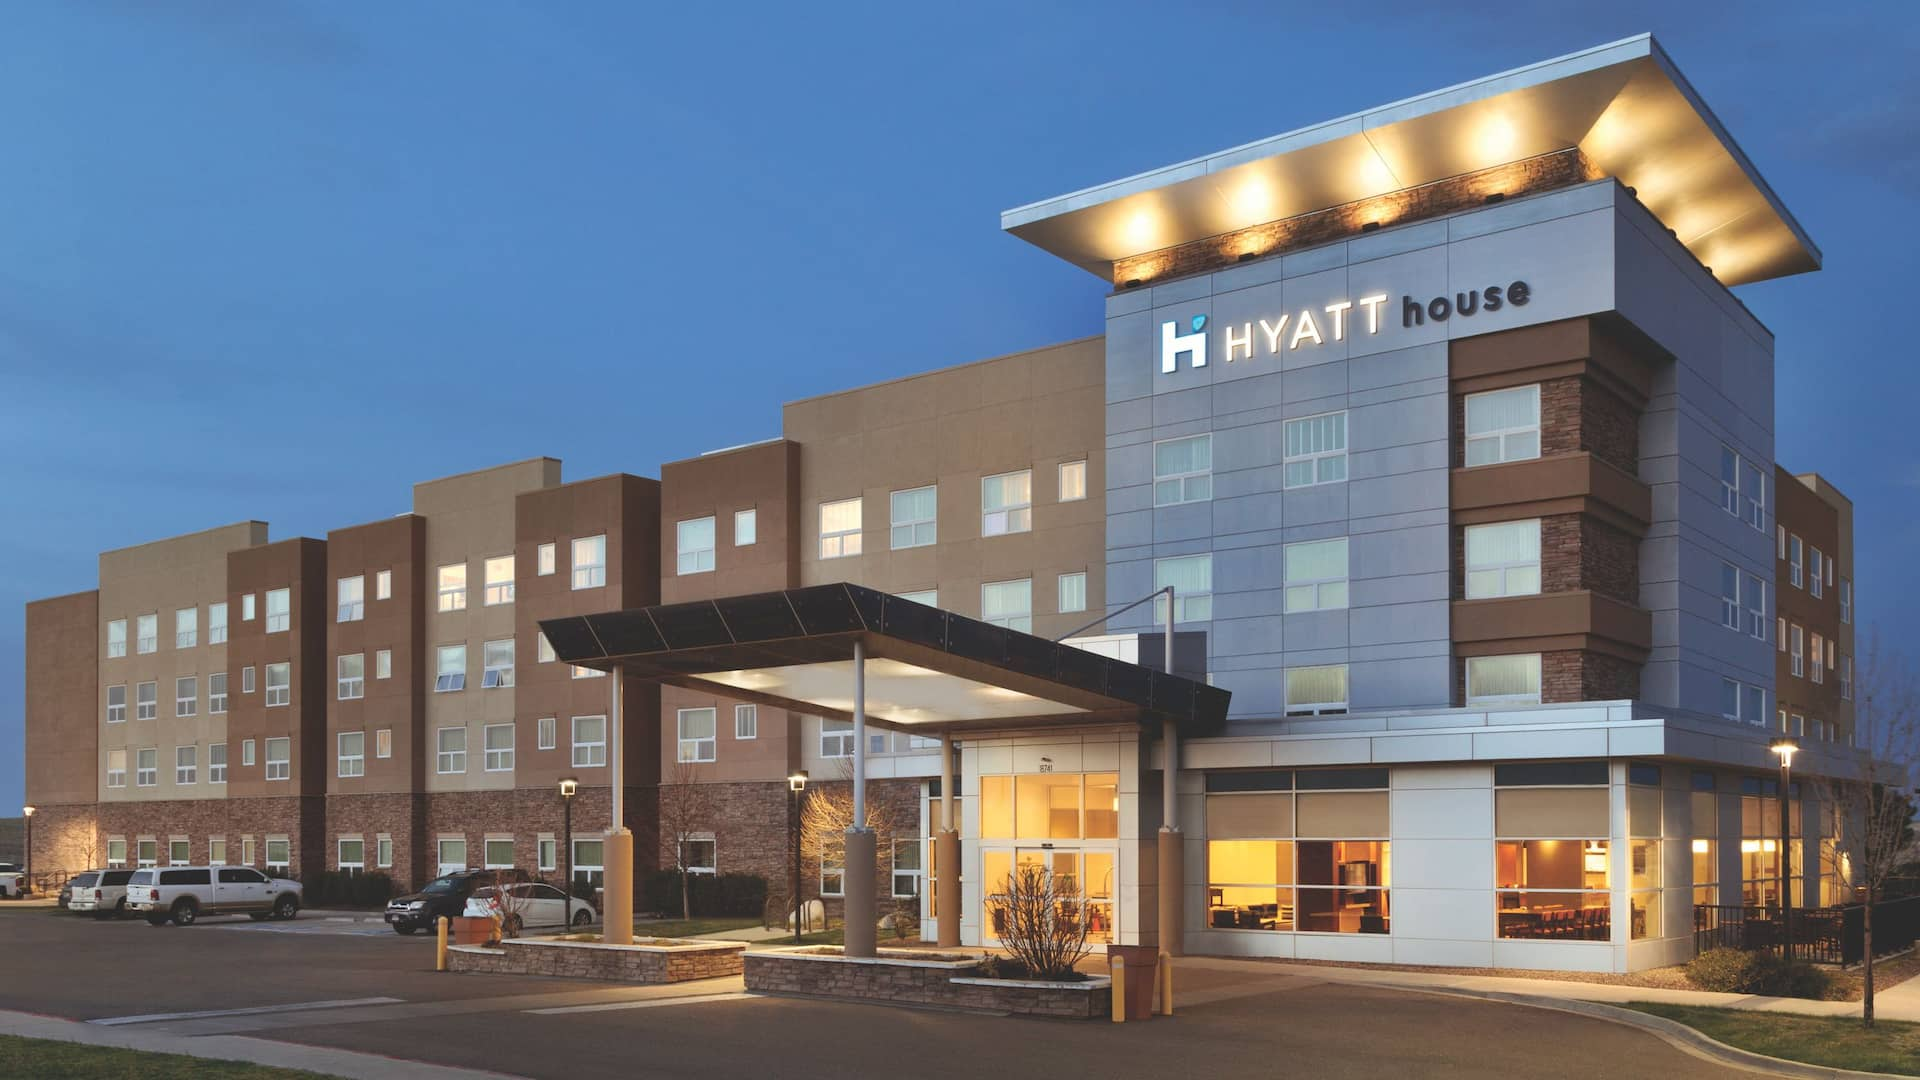 Hyatt House Denver Airport, exterior